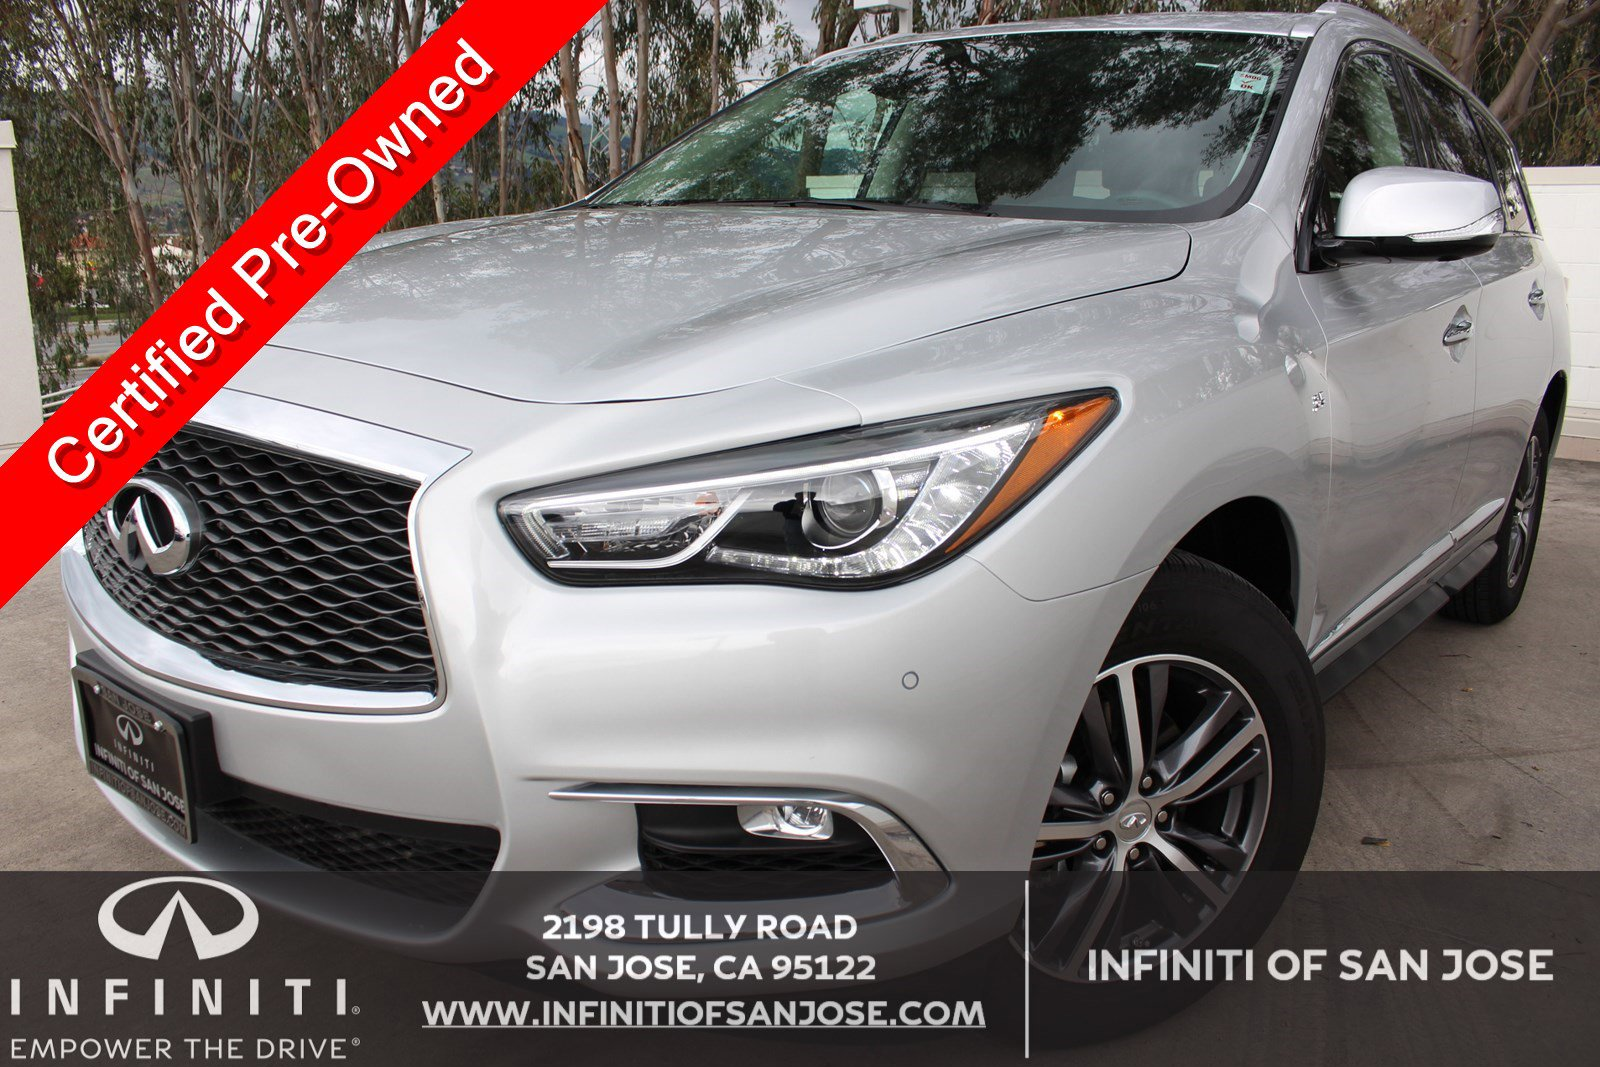 2019 INFINITI QX60 FWD w/ Essential Package image